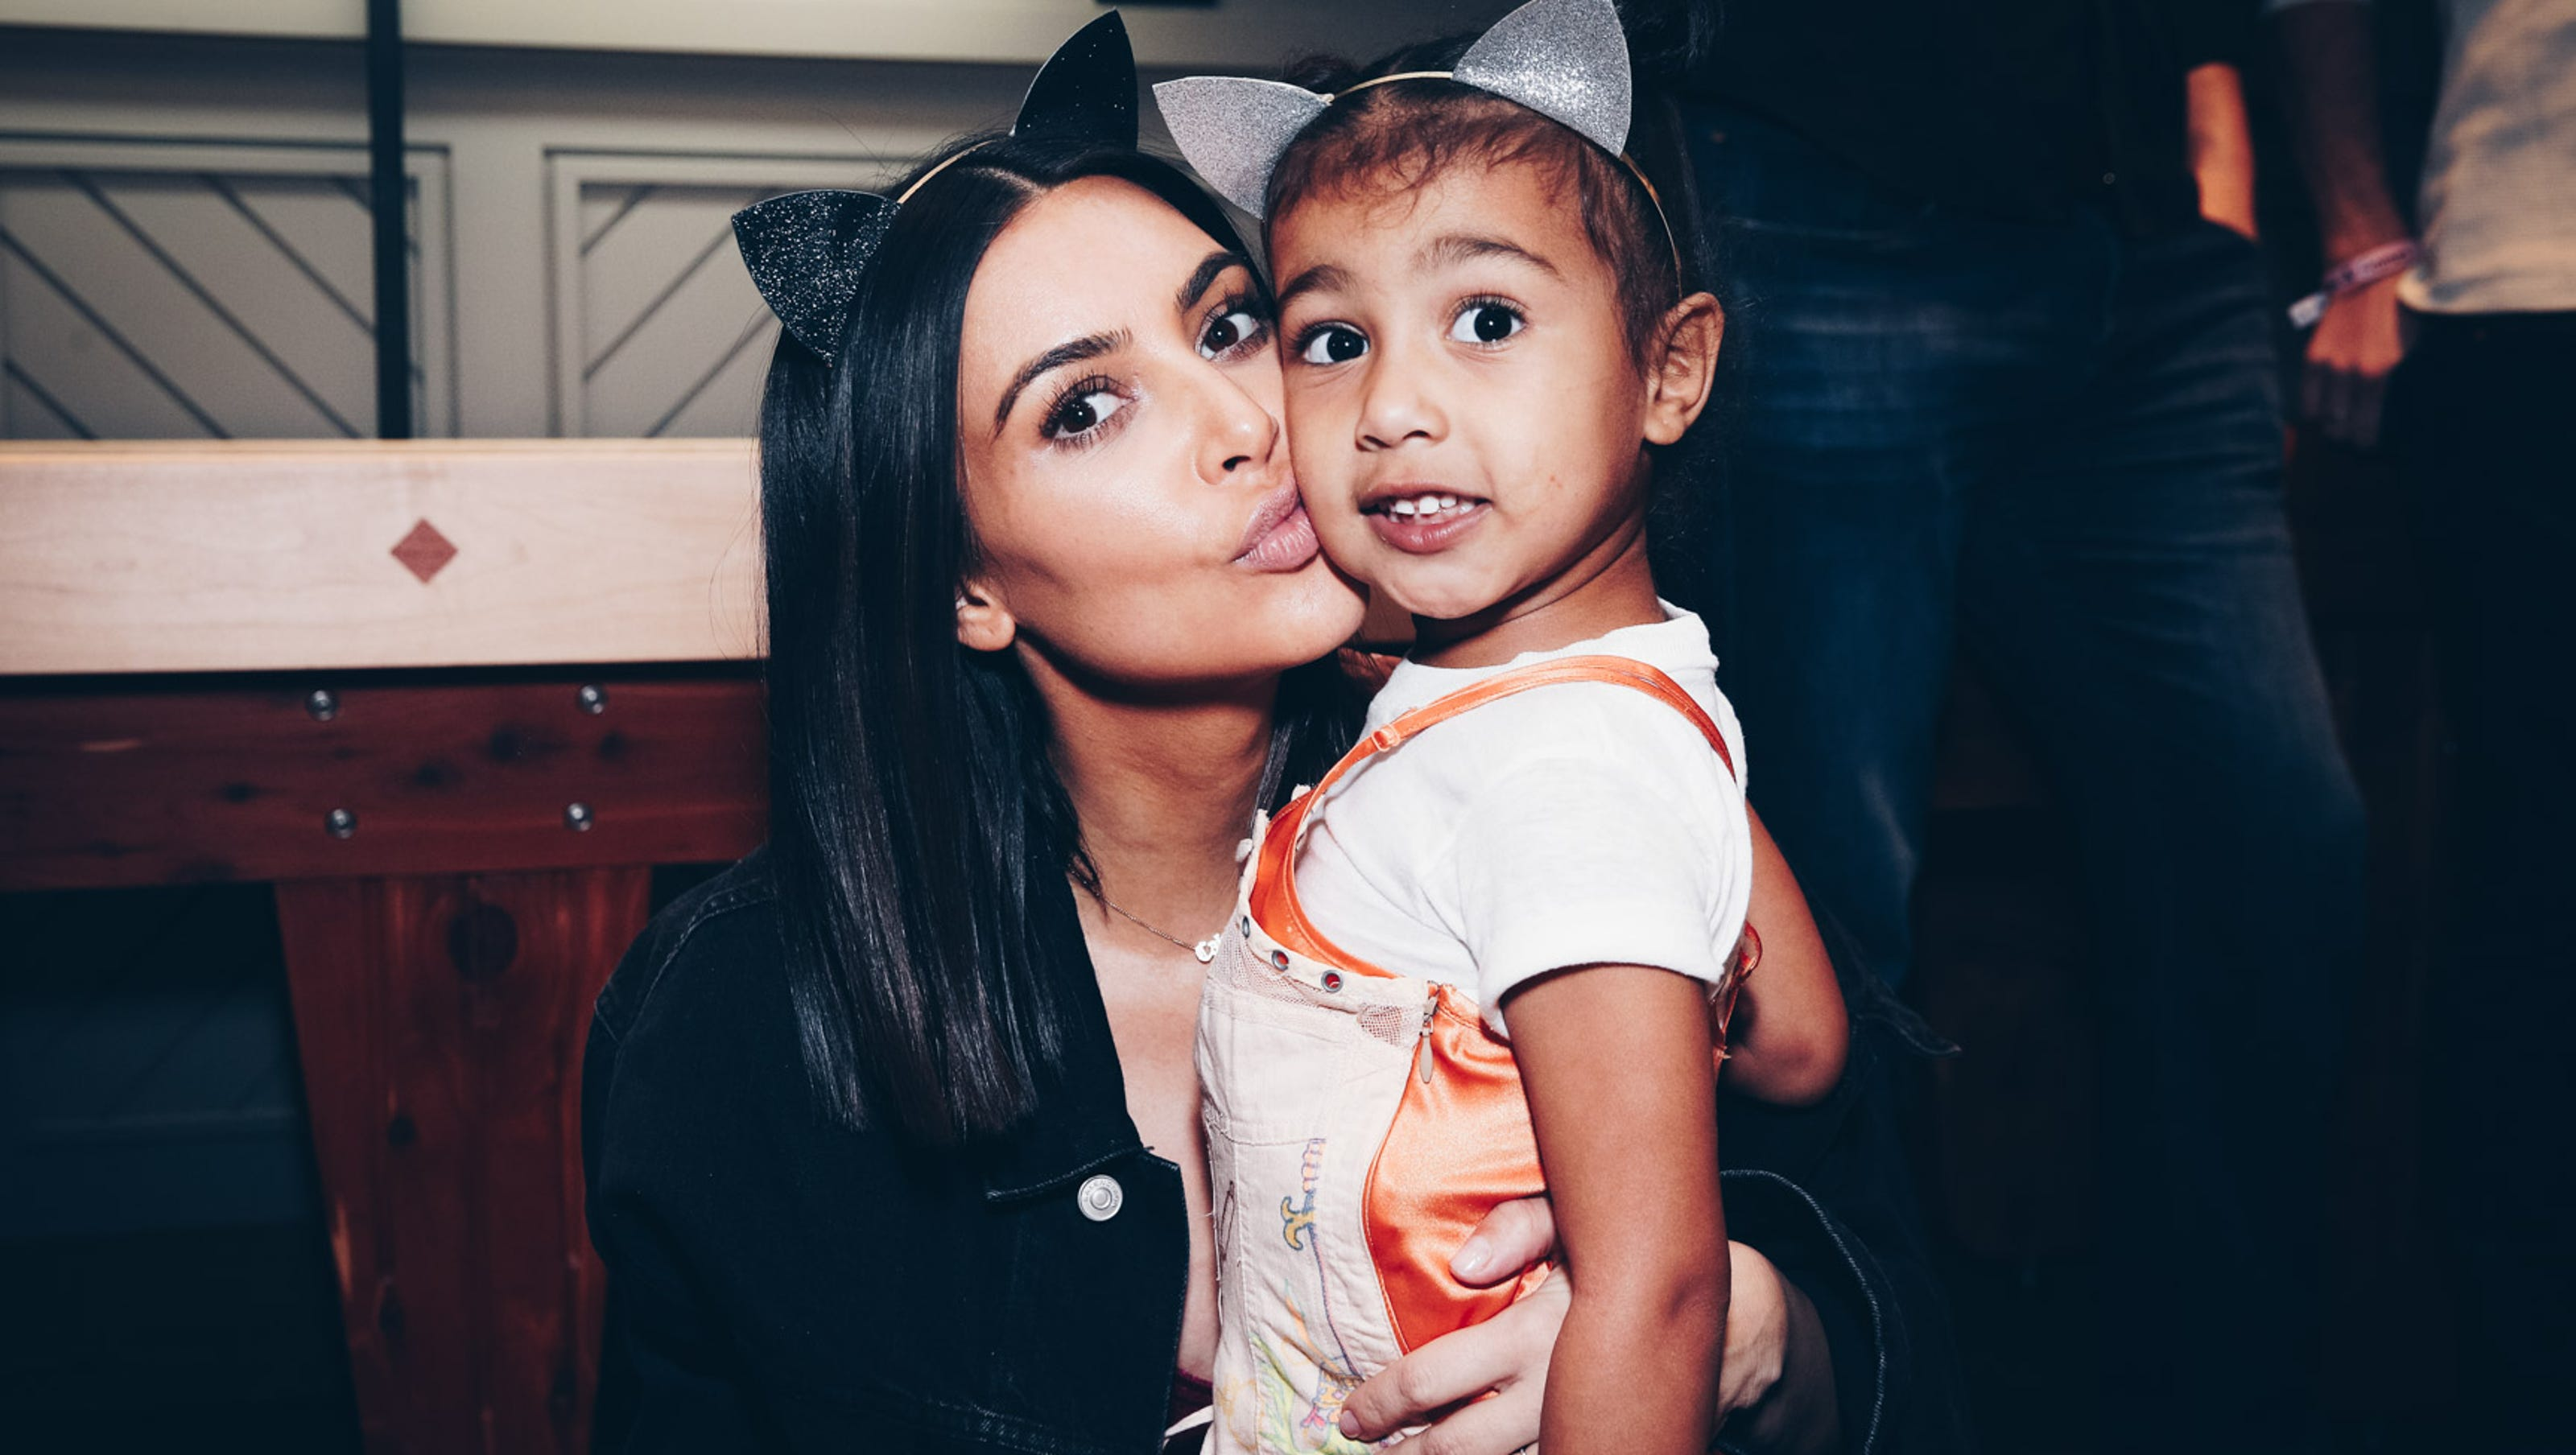 Kim Kardashian criticized for 5-year-old North's red lipstick: 'What is wrong with you?'